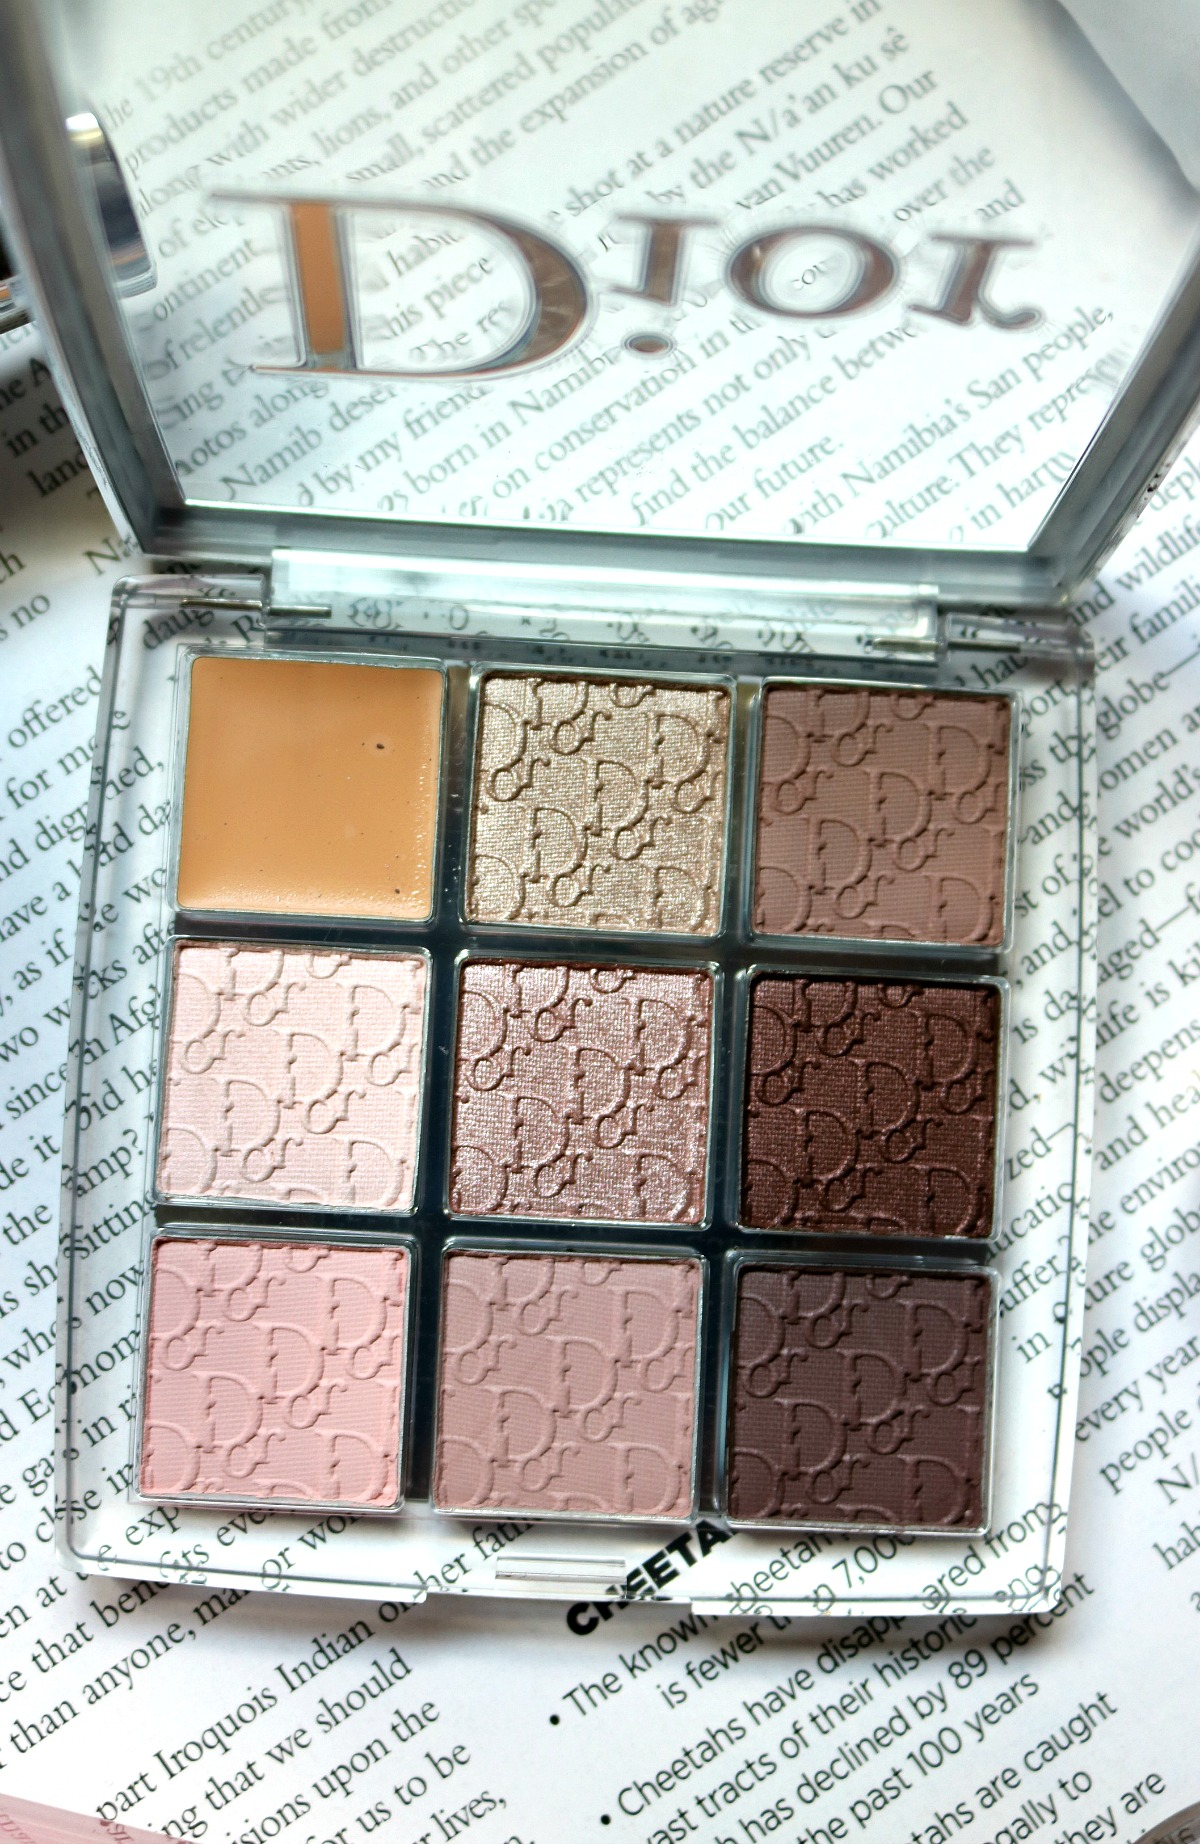 Dior Backstage Collection Eyeshadow Palette Review (Cool Tone) I DreaminLace.com #Dior #DiorMakeup #LuxuryMakeup